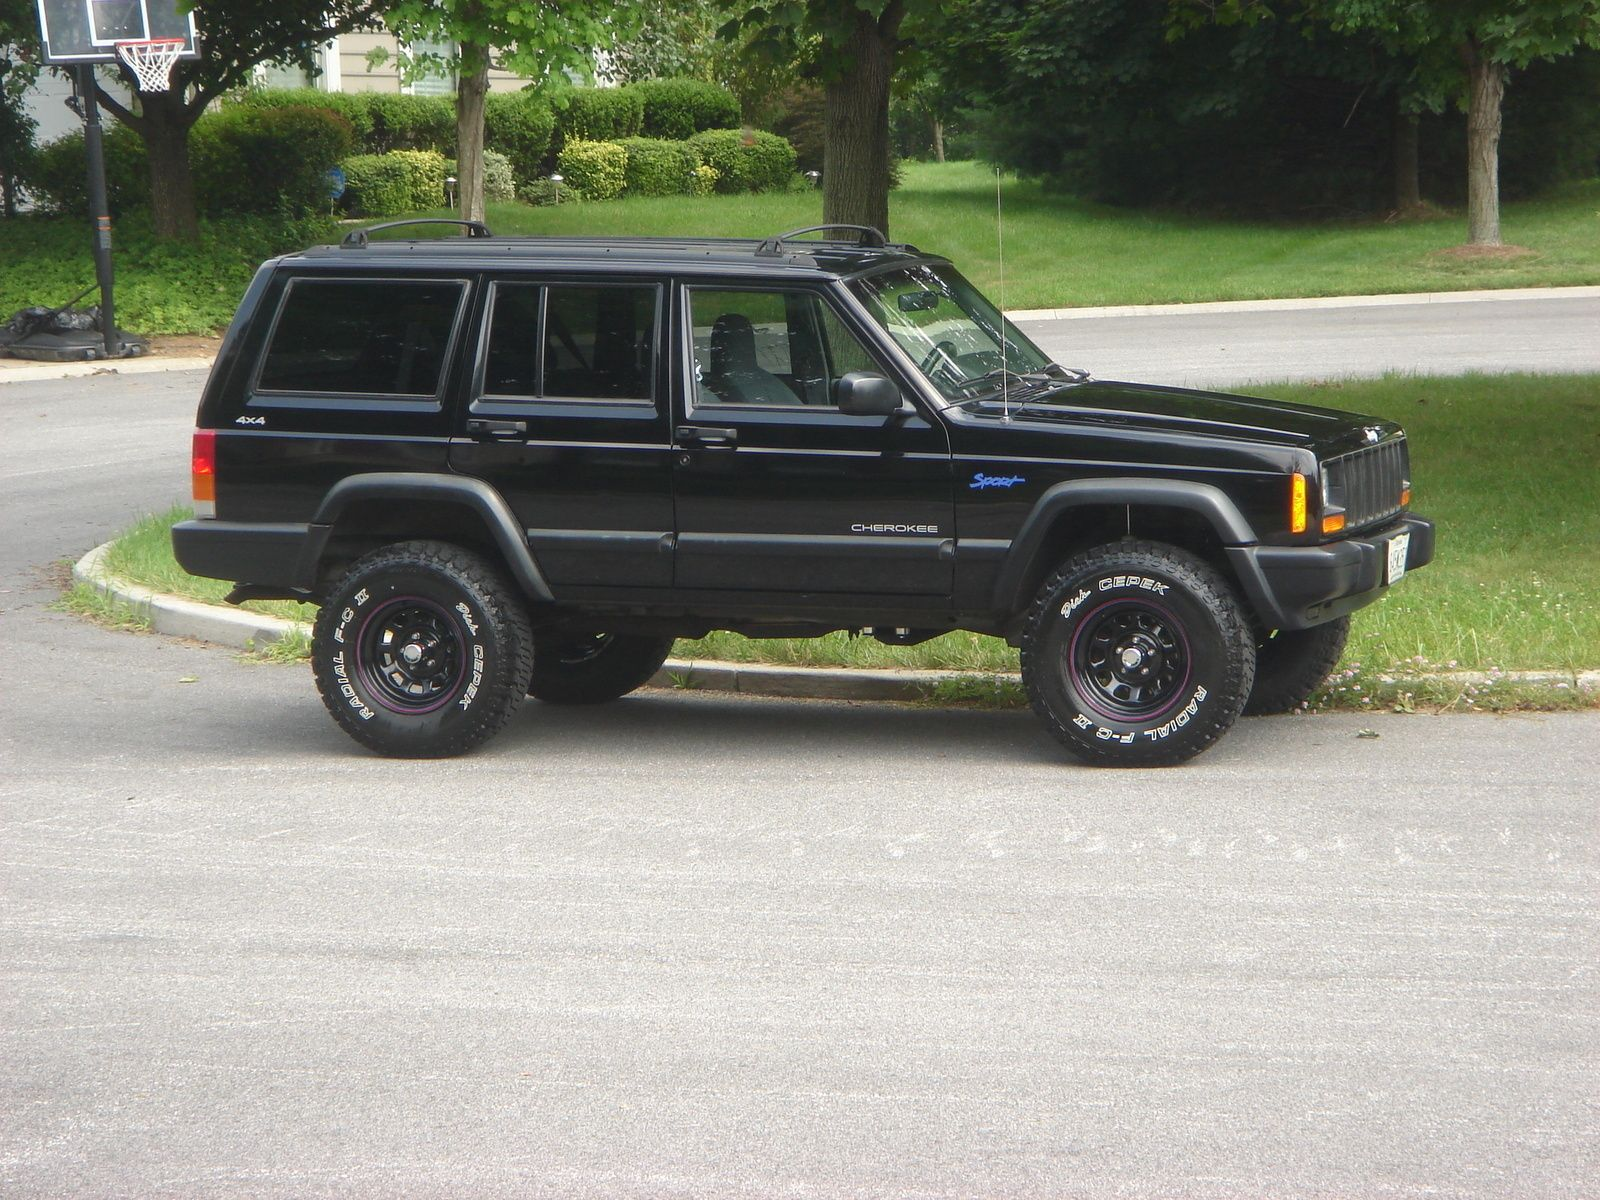 1997 jeep cherokee 4 dr sport 4wd | stuff to buy | pinterest